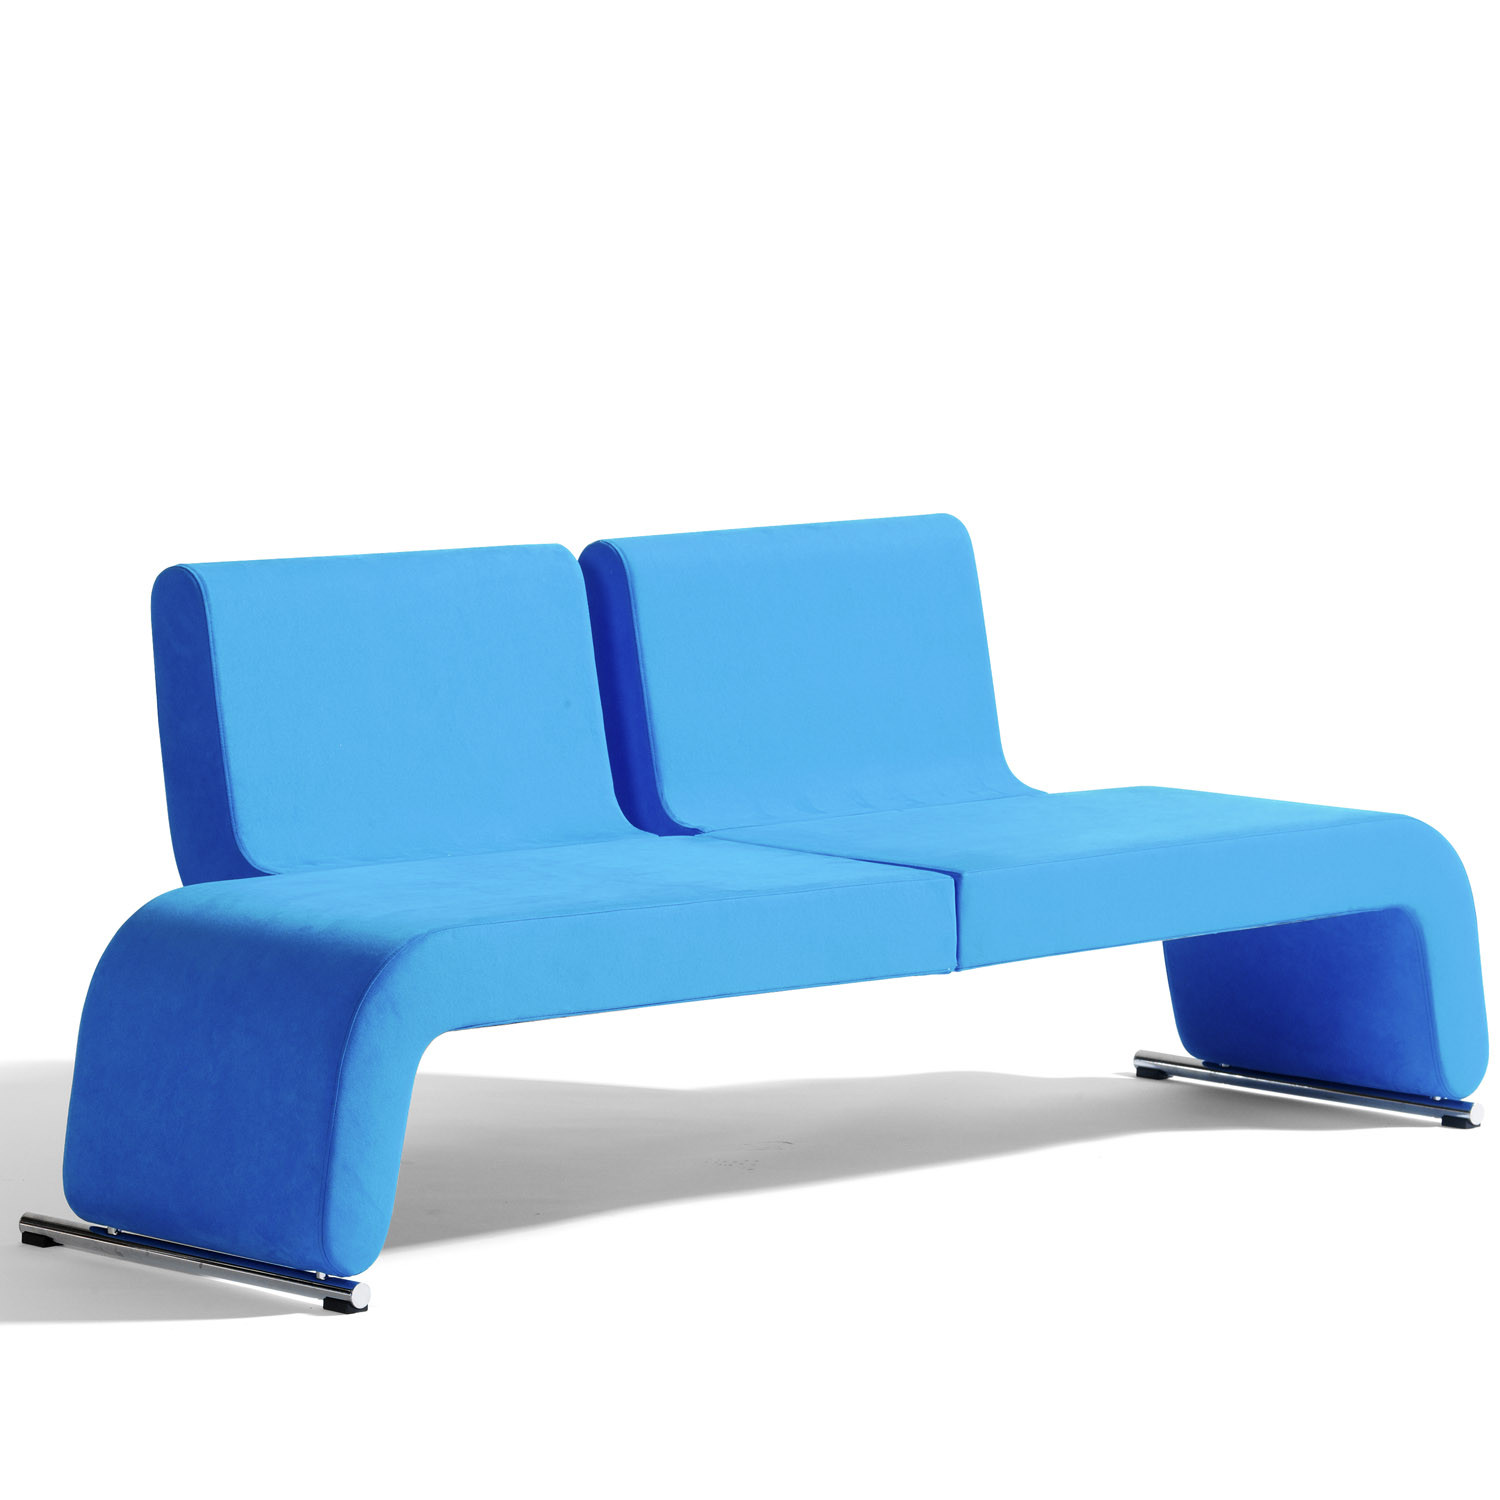 Polstergeist Sofa S20 for Waiting Areas